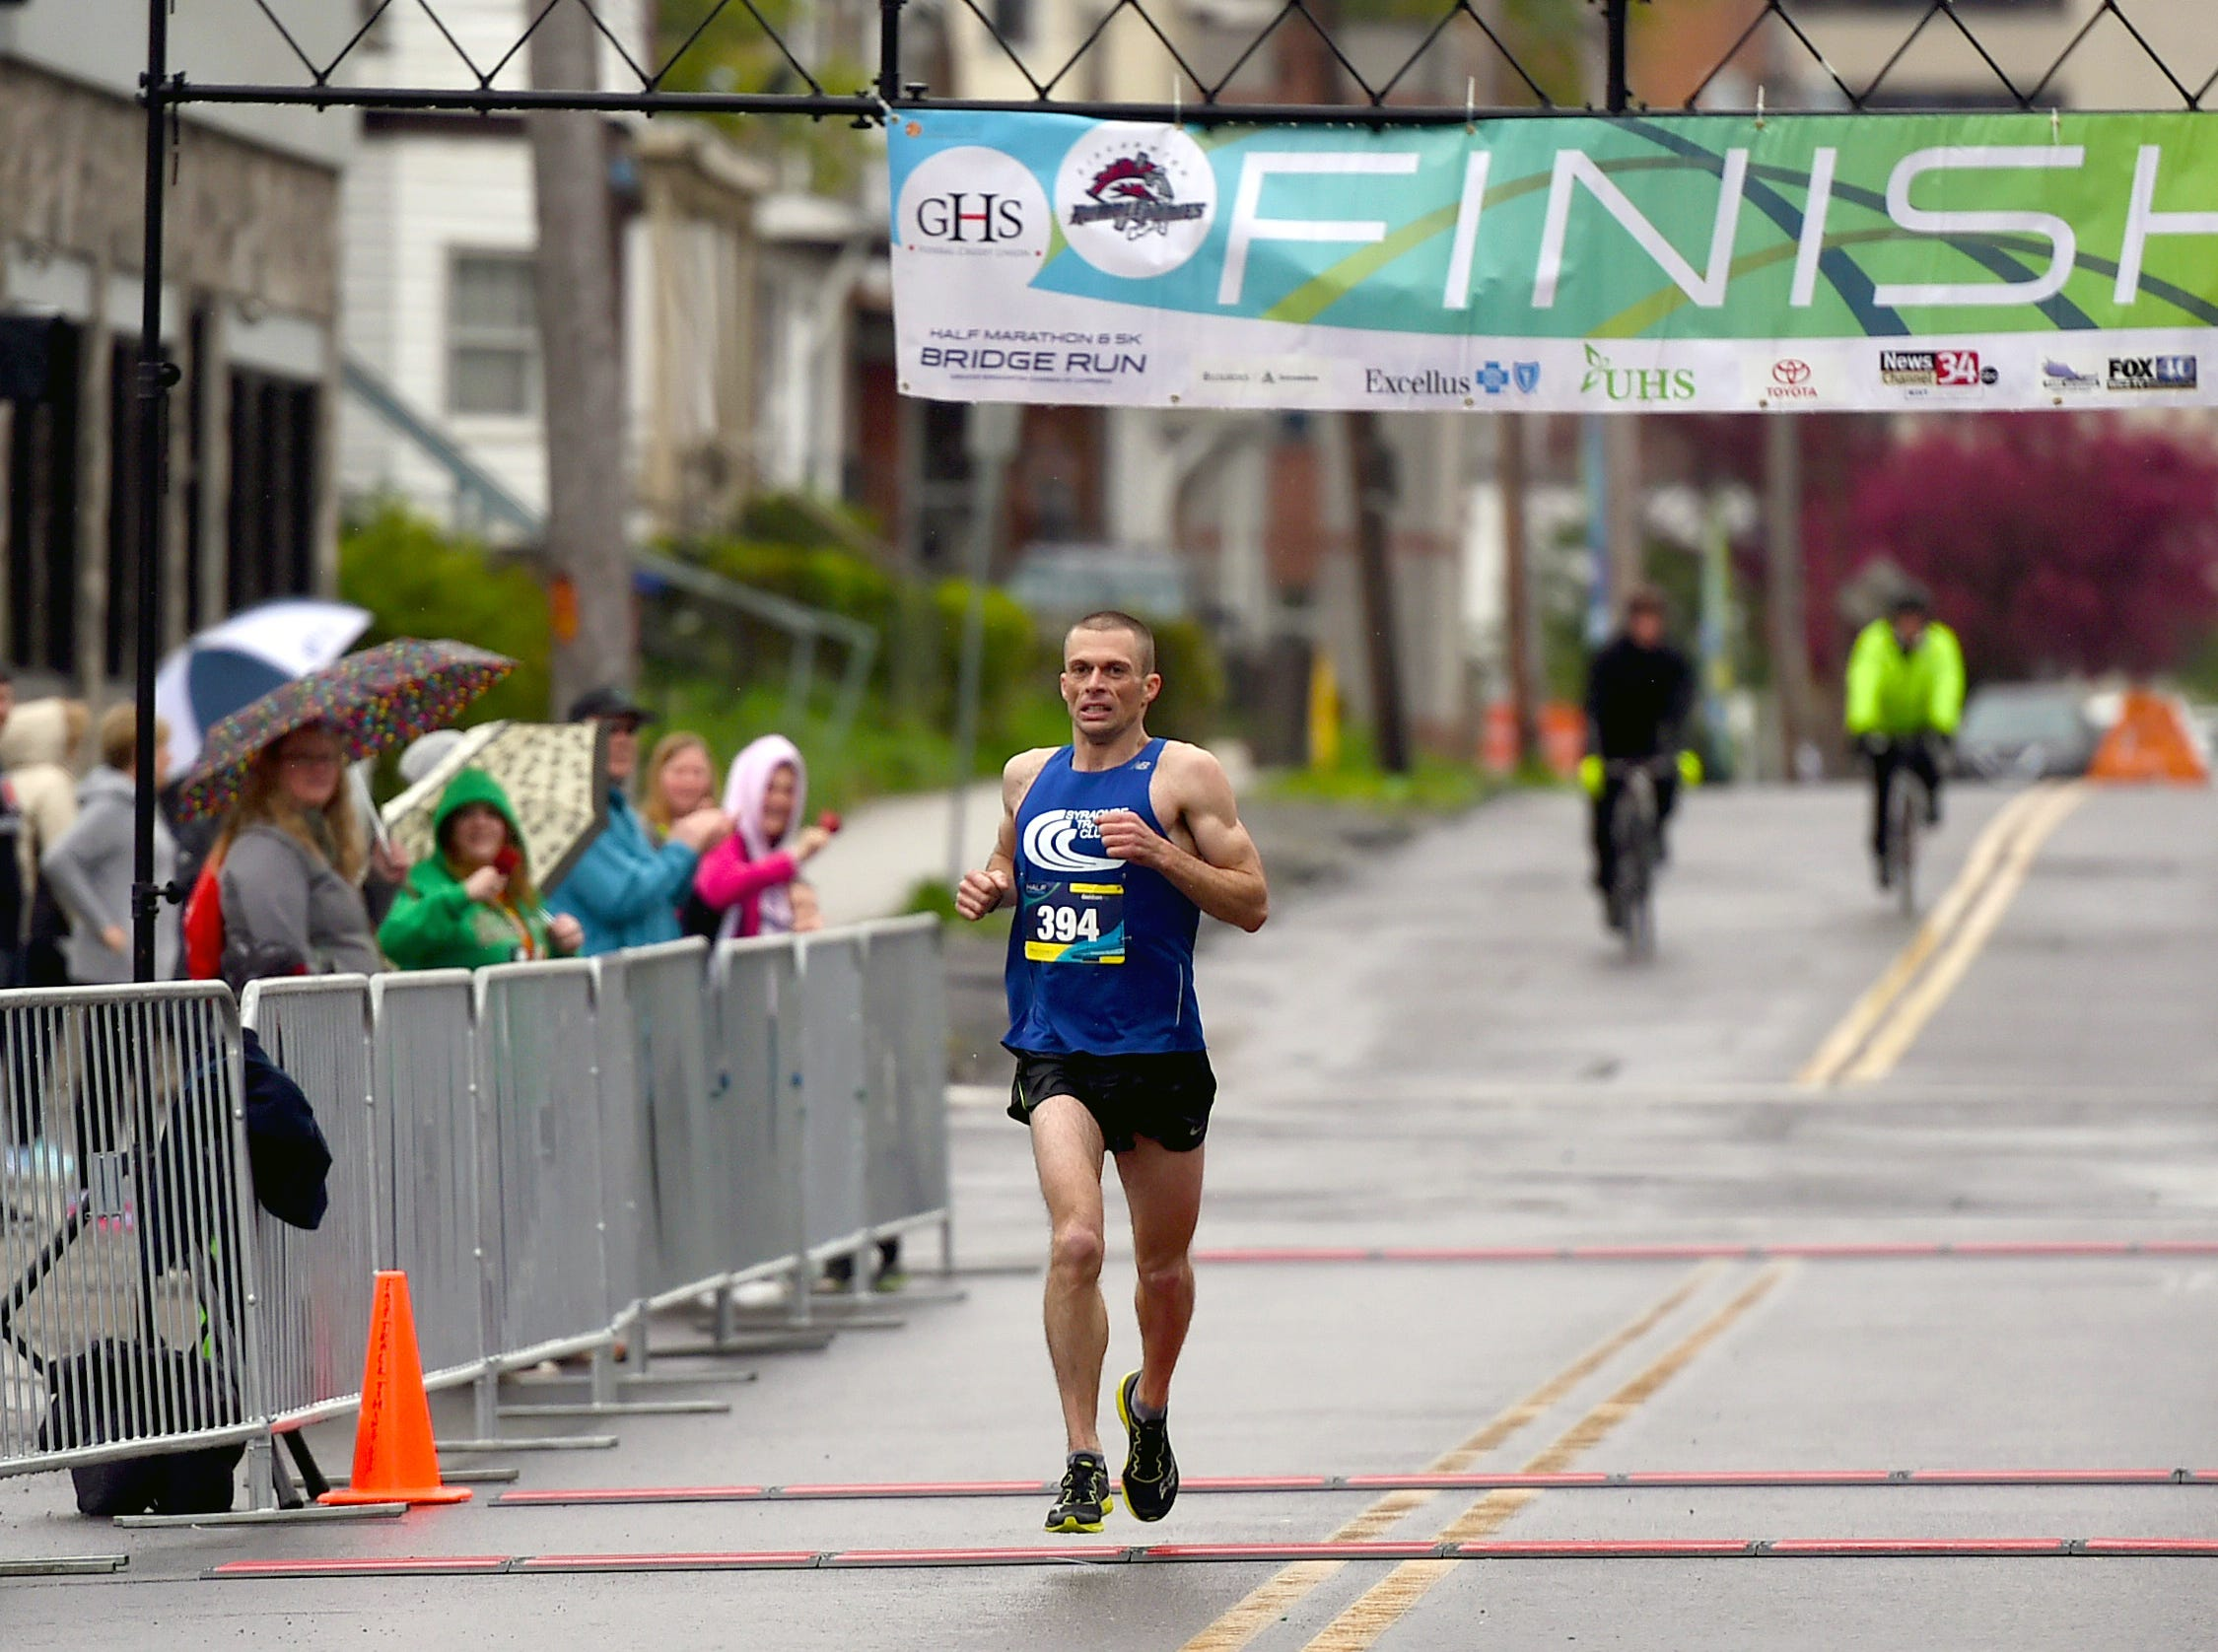 Sam Morse of Camden crosses the finish line of the Greater Binghamton Bridge Run Half Marathon on Sunday, May 5, 2019. Morse finished first and set a course record of 1:08.38.